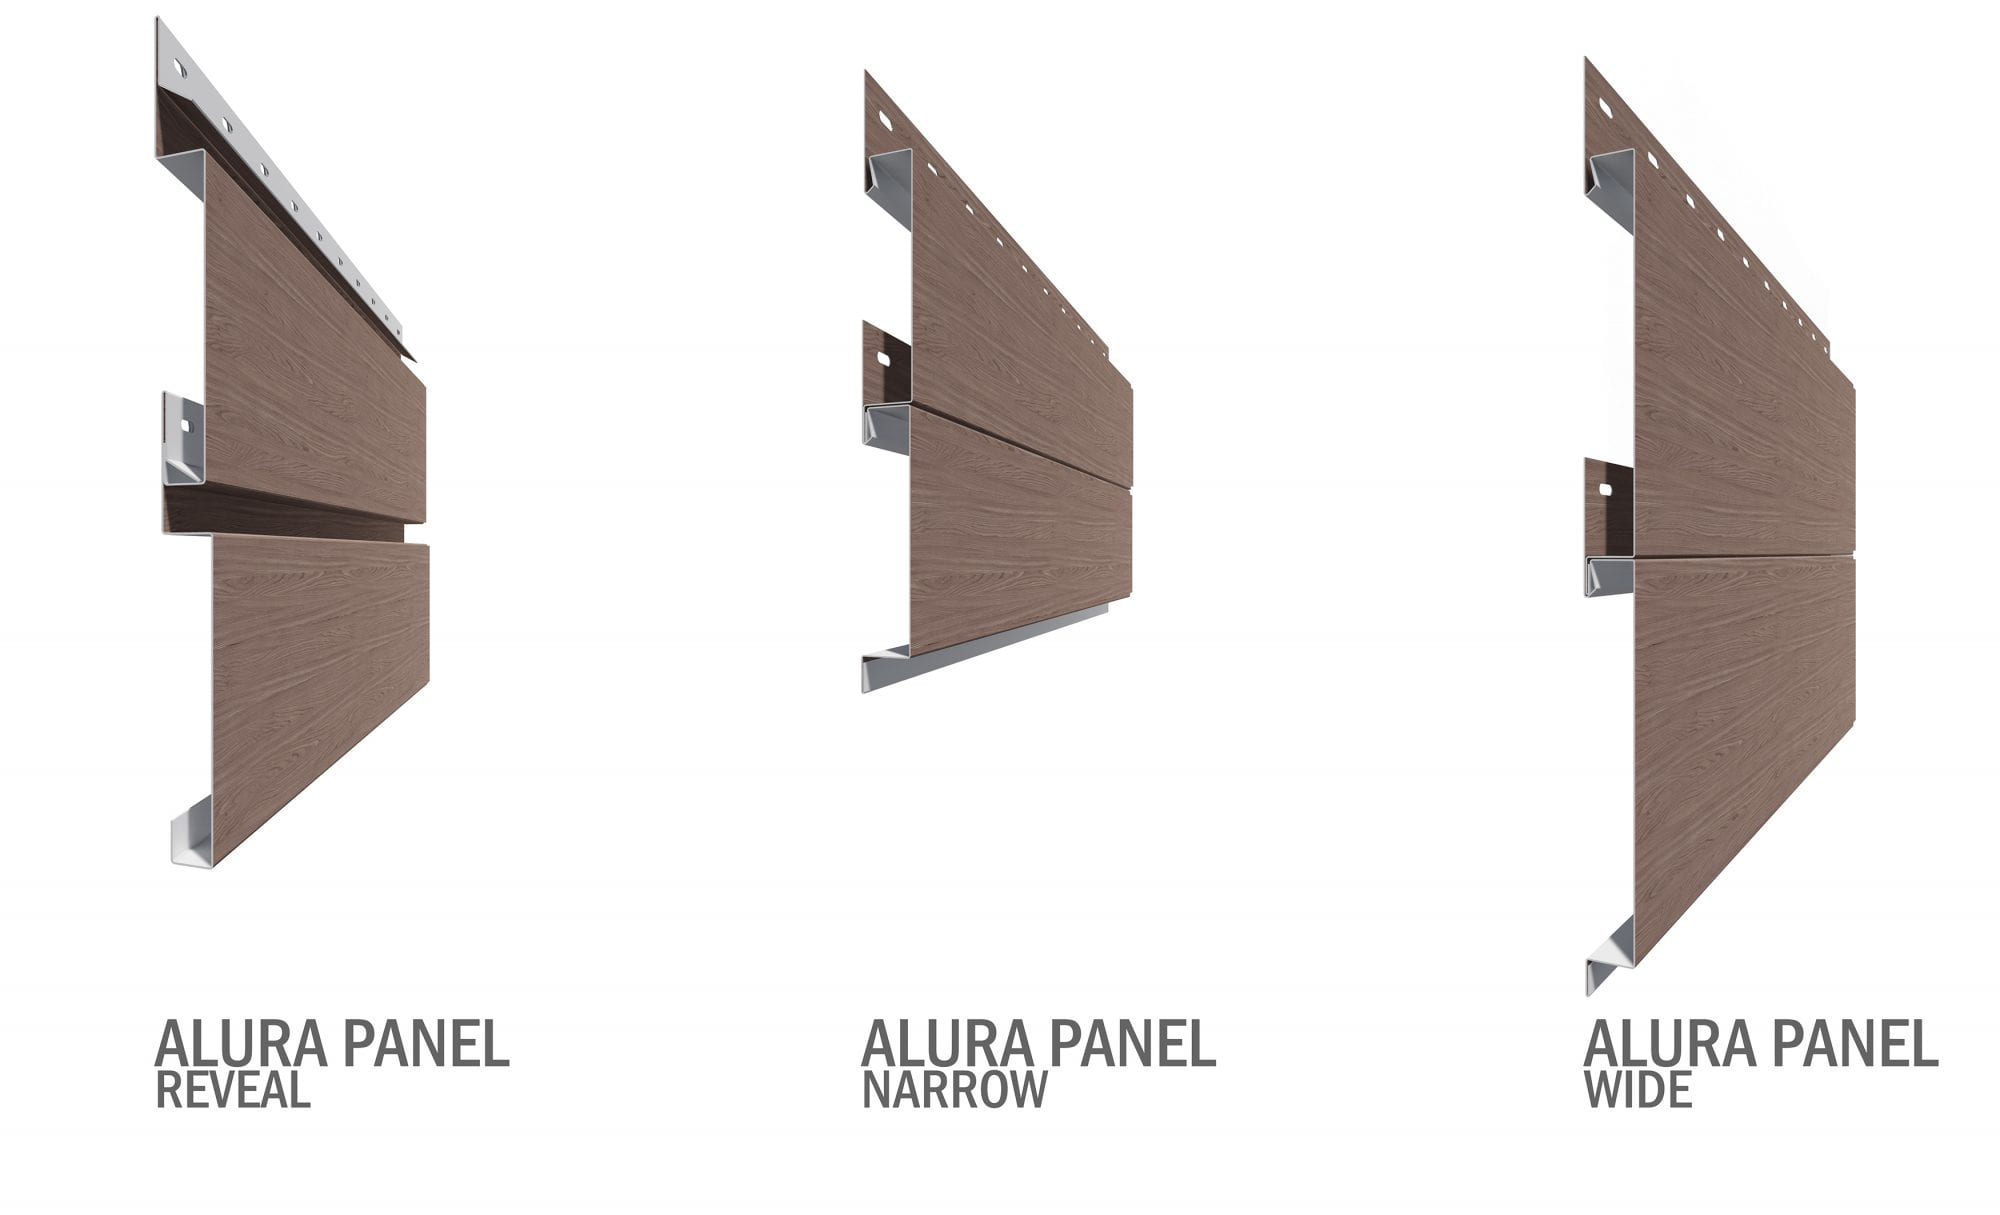 Siding profile for woodgrain metal panel commercial or residential